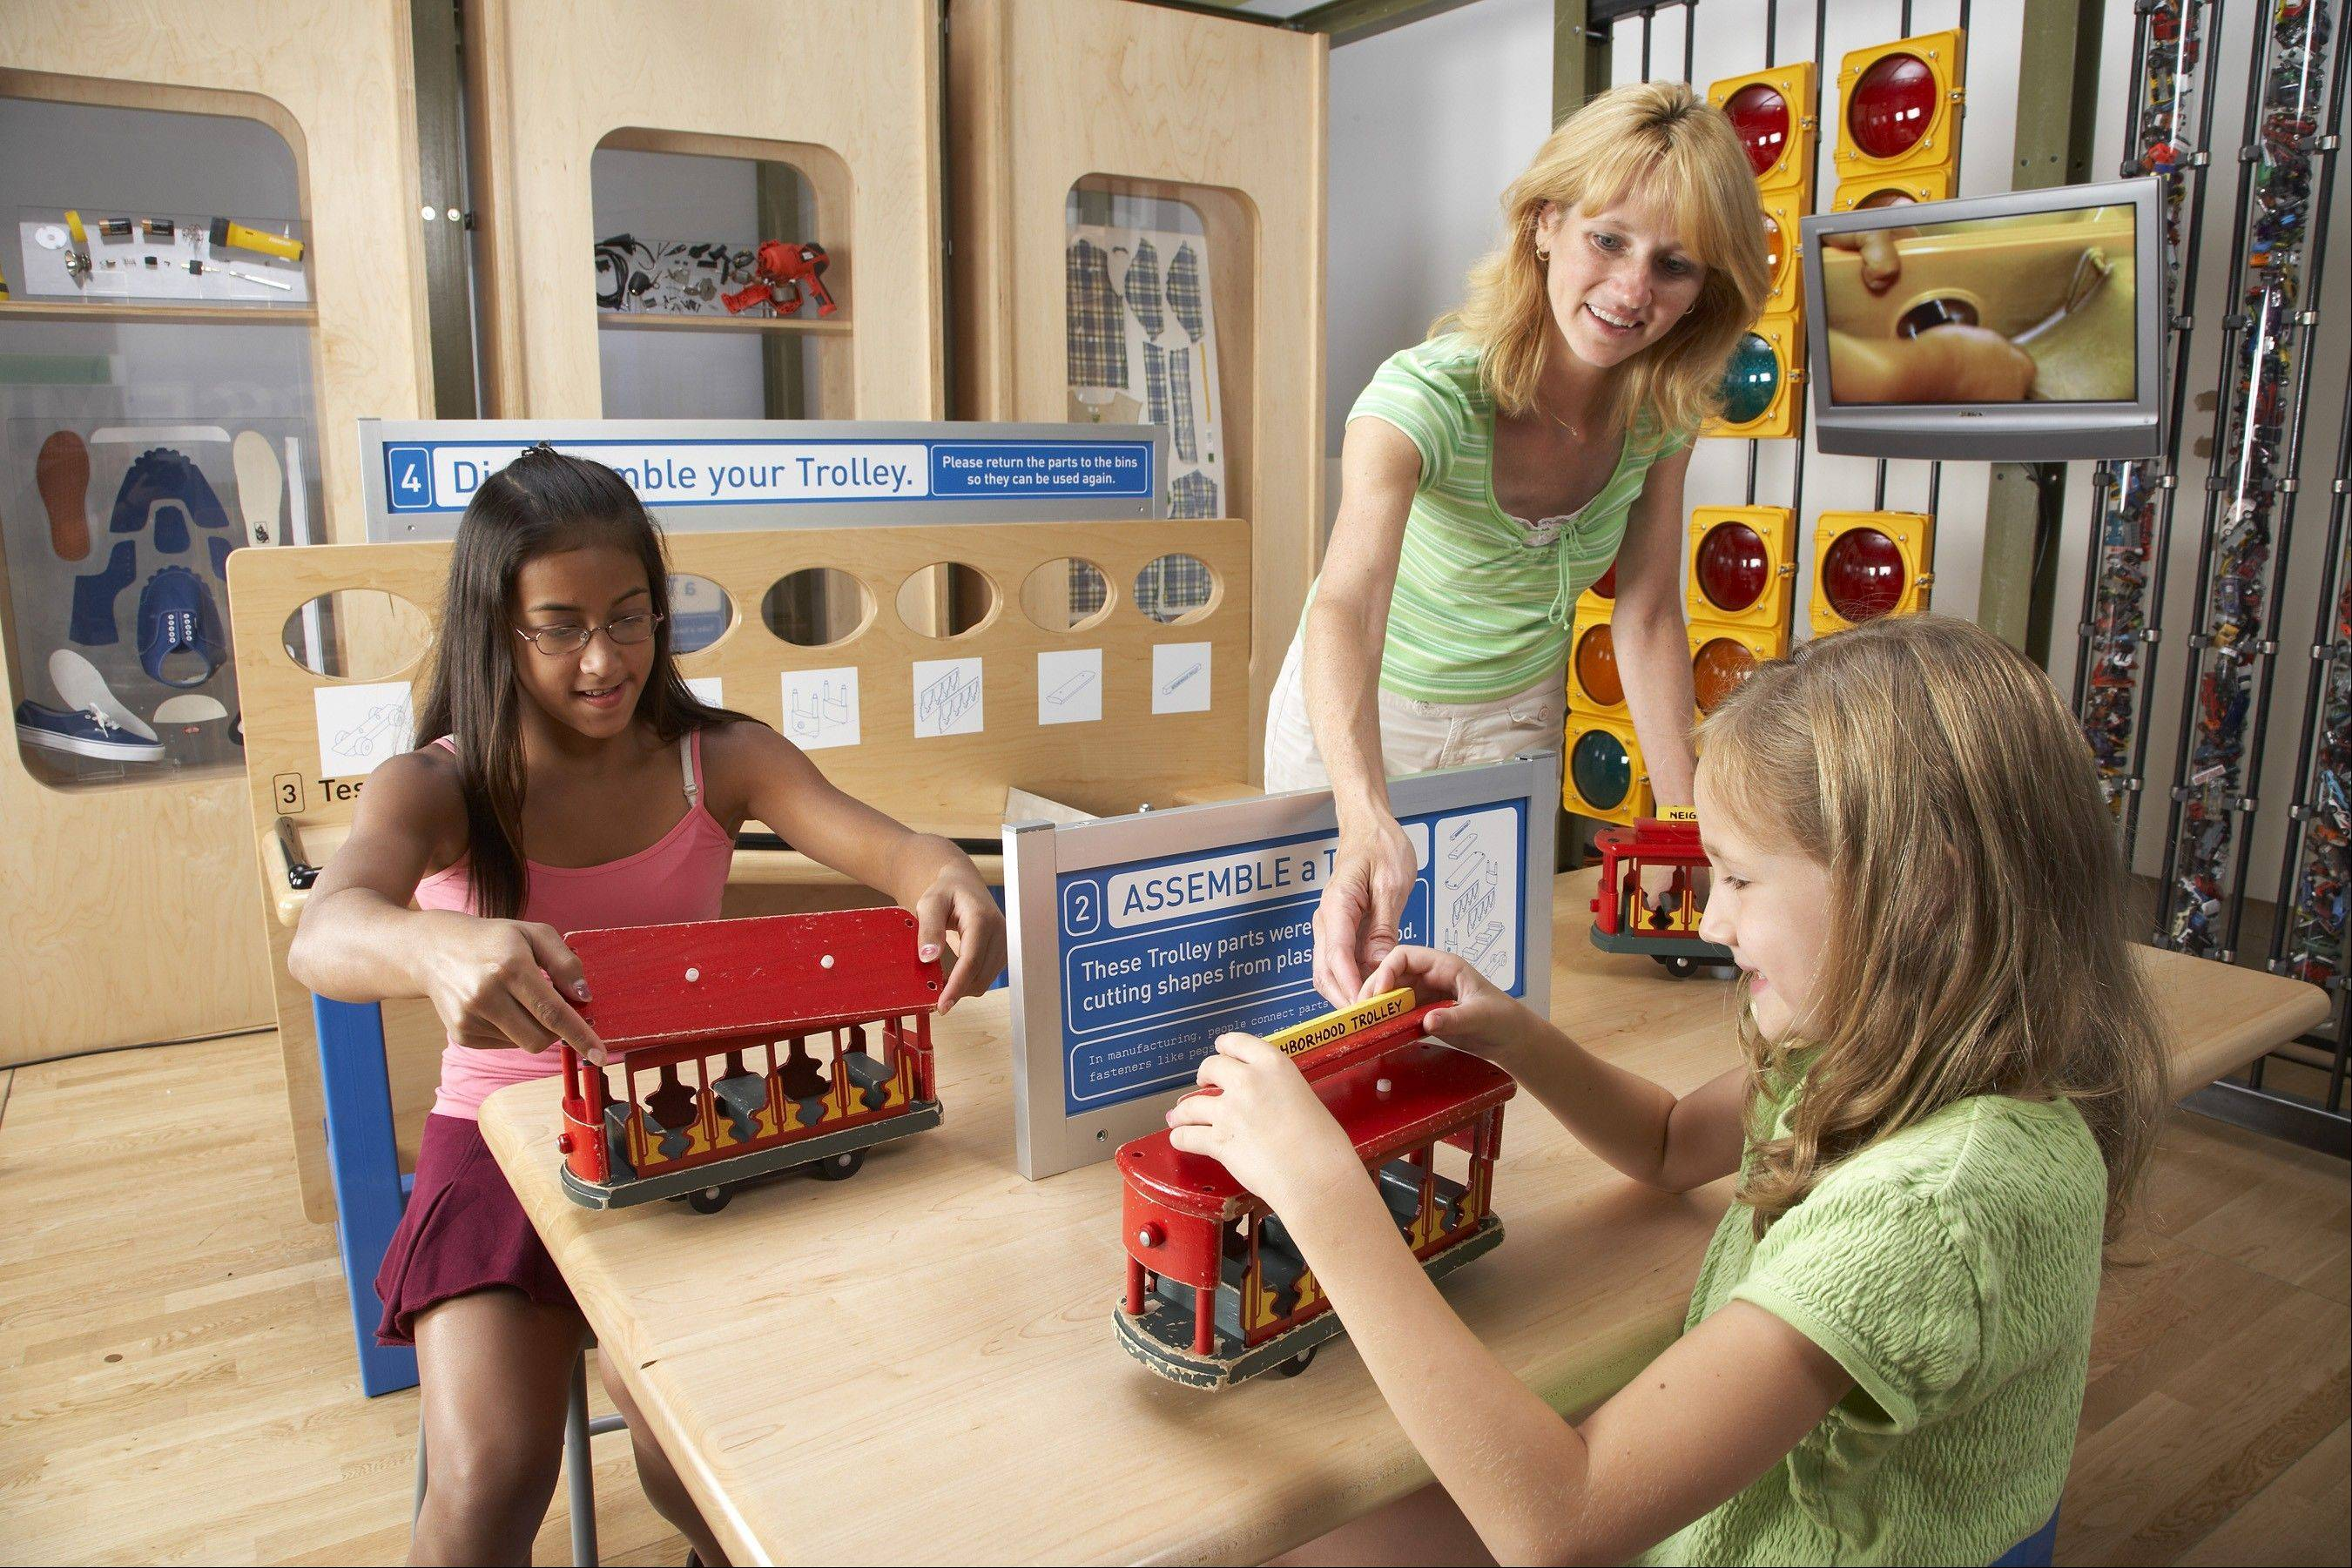 Two students see how manufacturing works and parts are joined together to create a new shape in the new exhibit How People Make Things at the DuPage Children's Museum.